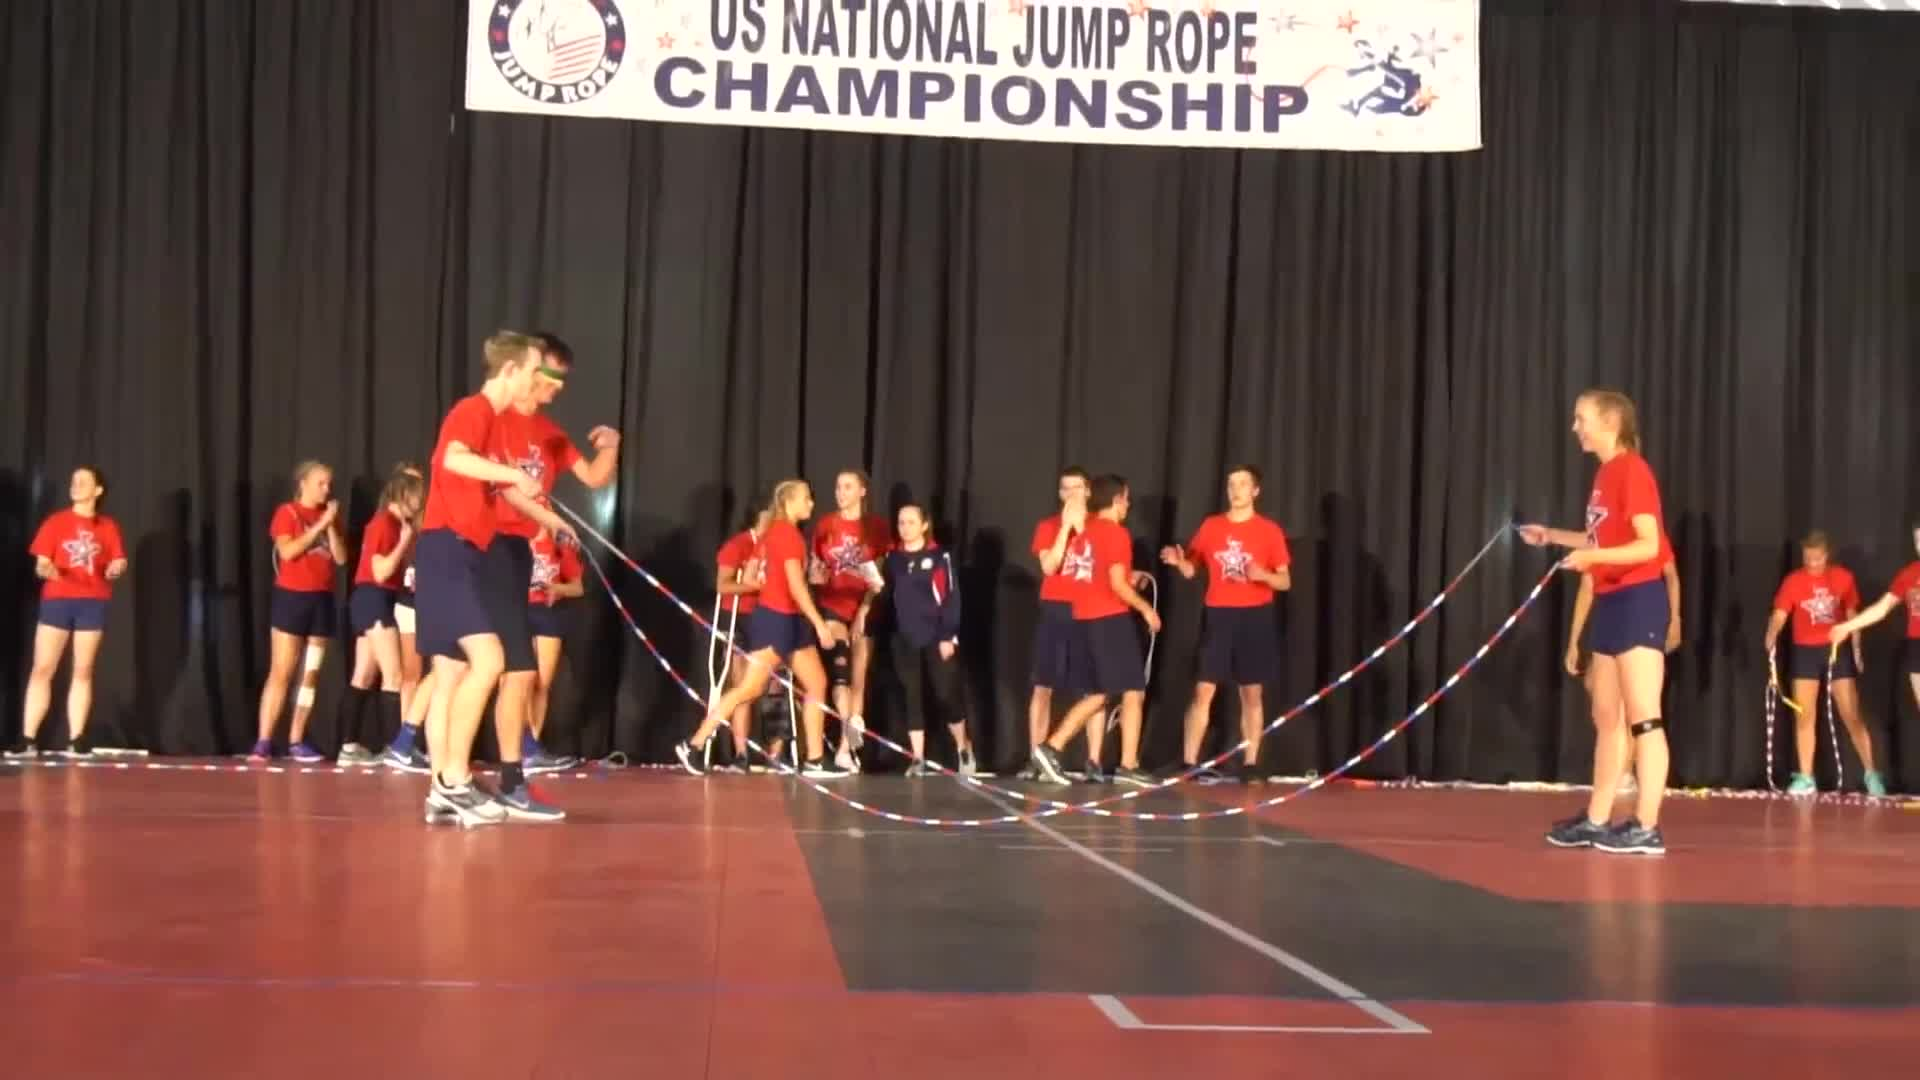 2018, Film & Animation, WeJumpRope Music Videos, grand nationals, jump rope, usajr, wejumprope, USAJR NATIONALS 2018 - Day 4 (GRANDS) GIFs